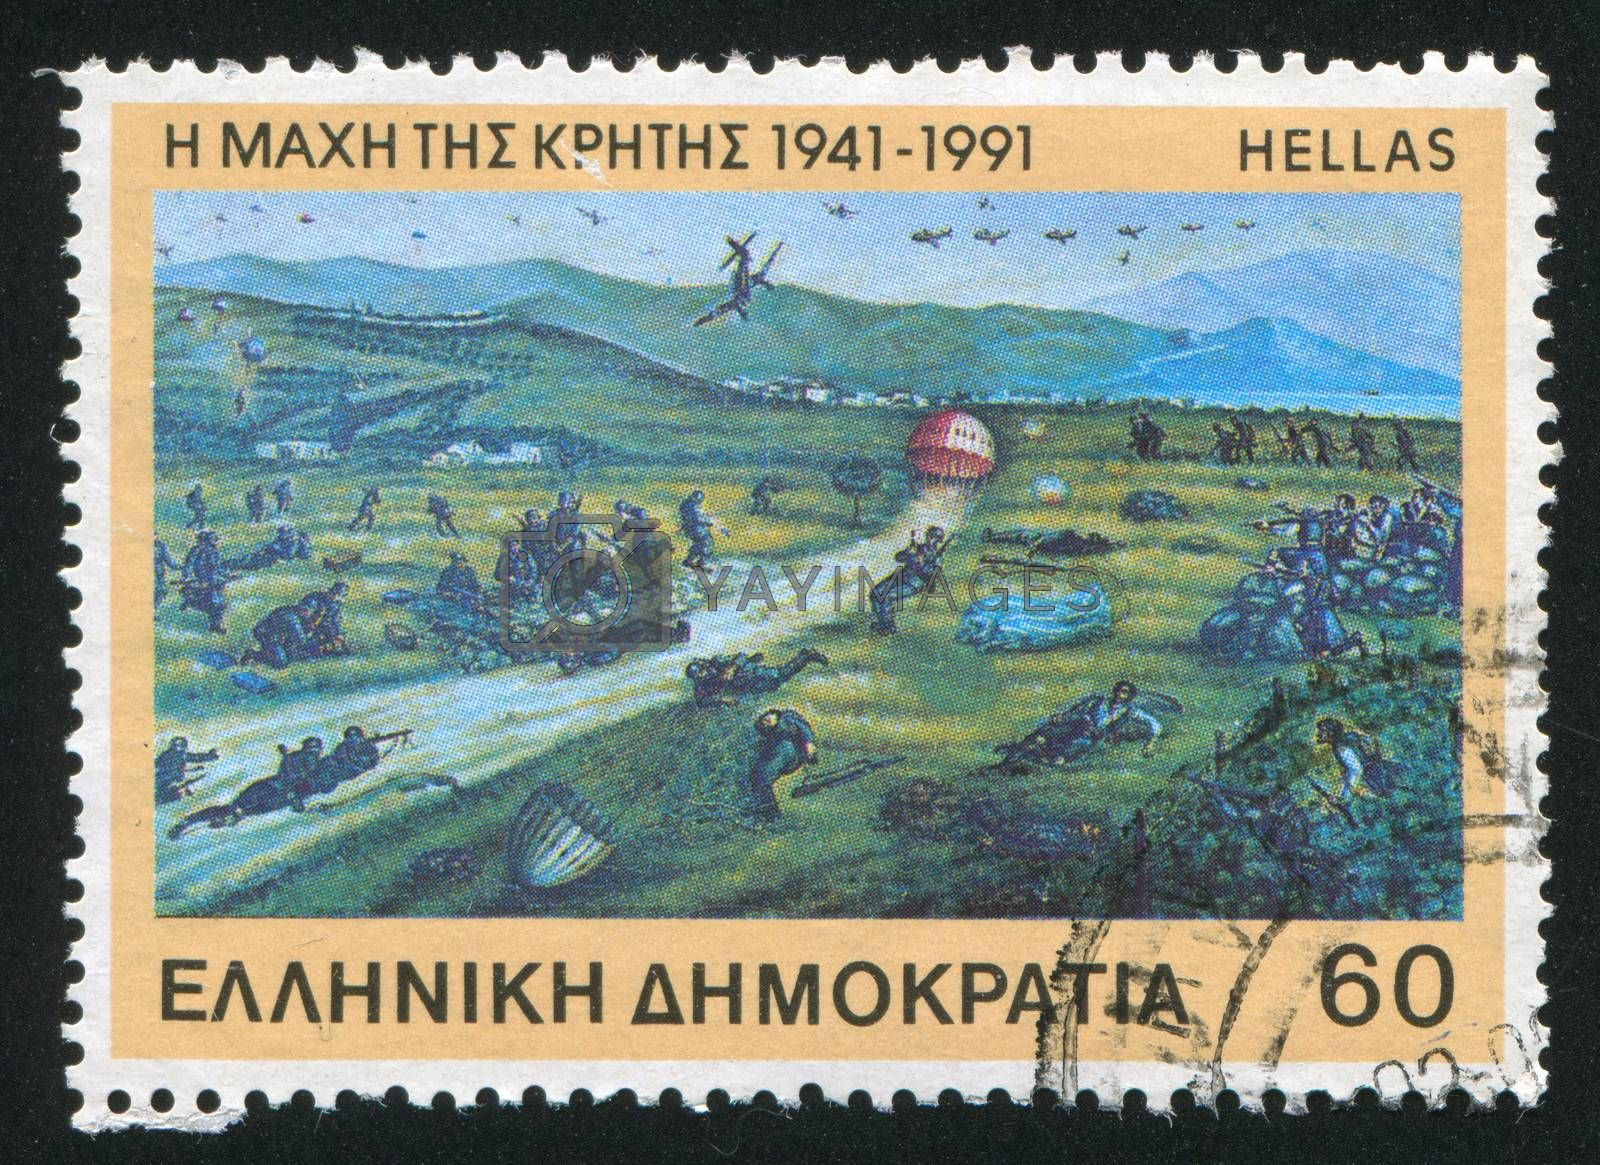 GREECE - CIRCA 1991: stamp printed by Greece, shows Battle of Crete by Ioannis Anousakis, circa 1991